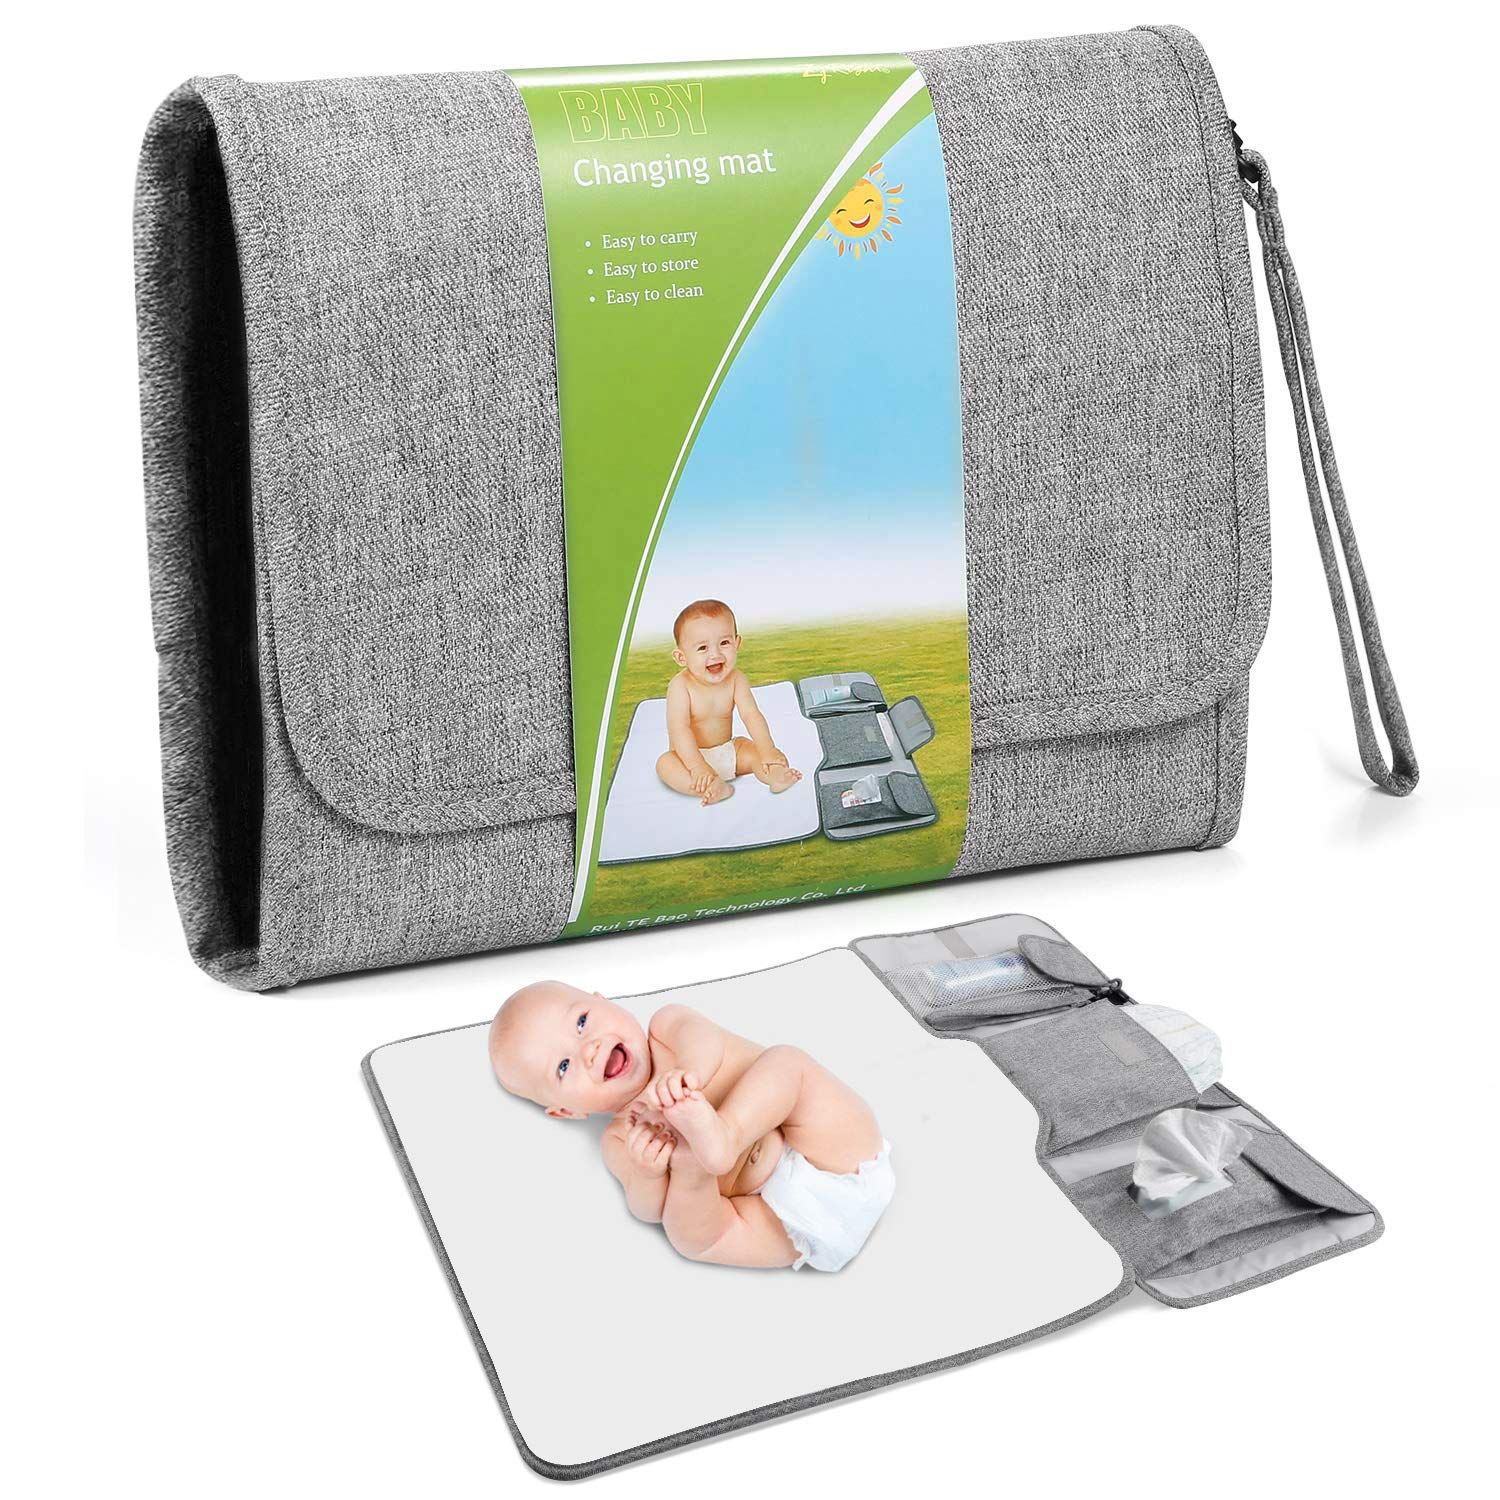 Sale Portable Denver Mall Diaper Changing Pad Detachable Large Baby Size